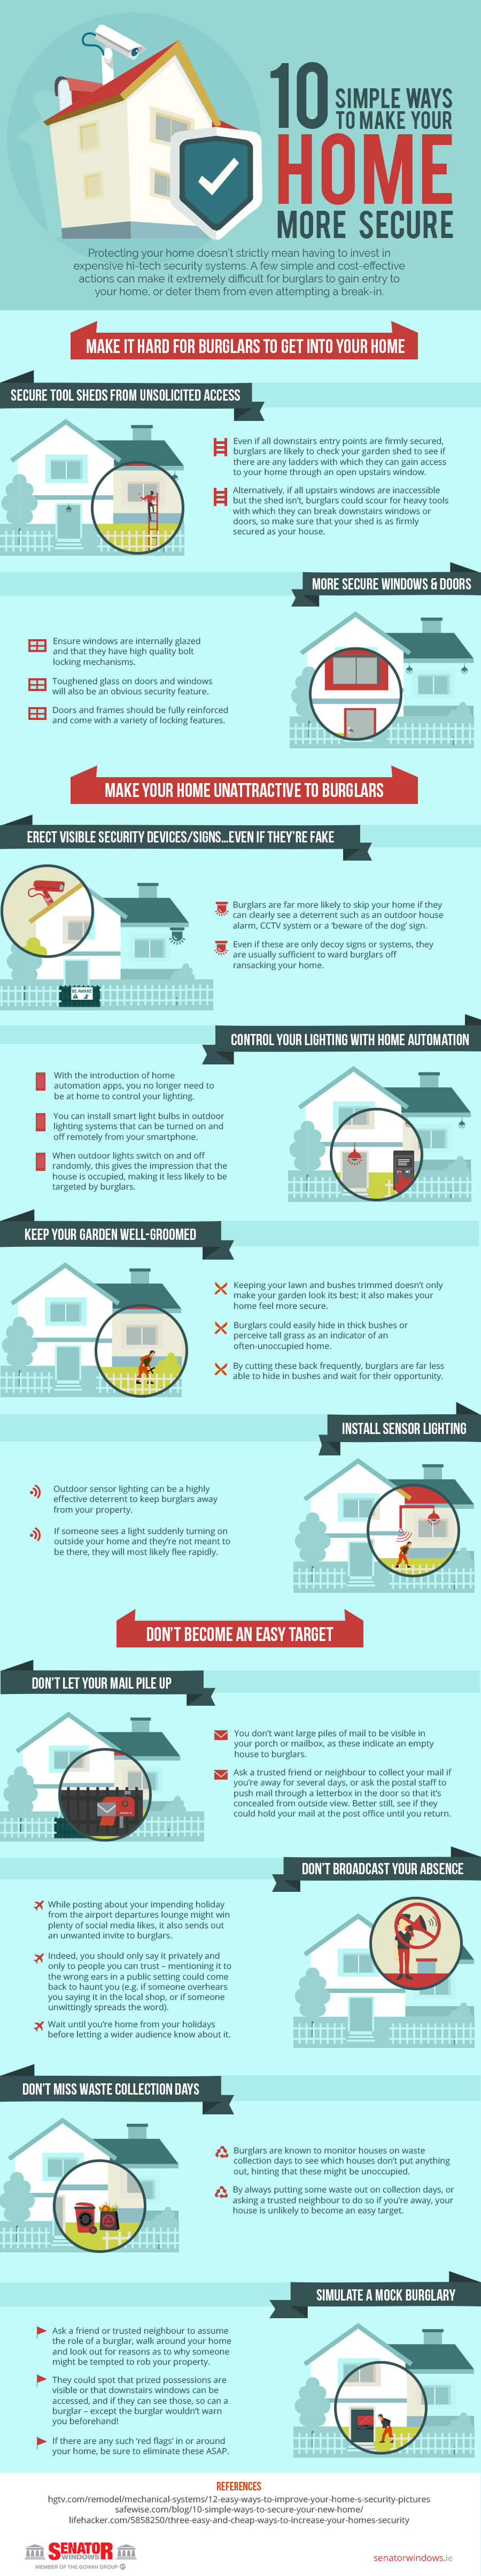 infographic on how to make your home more secure